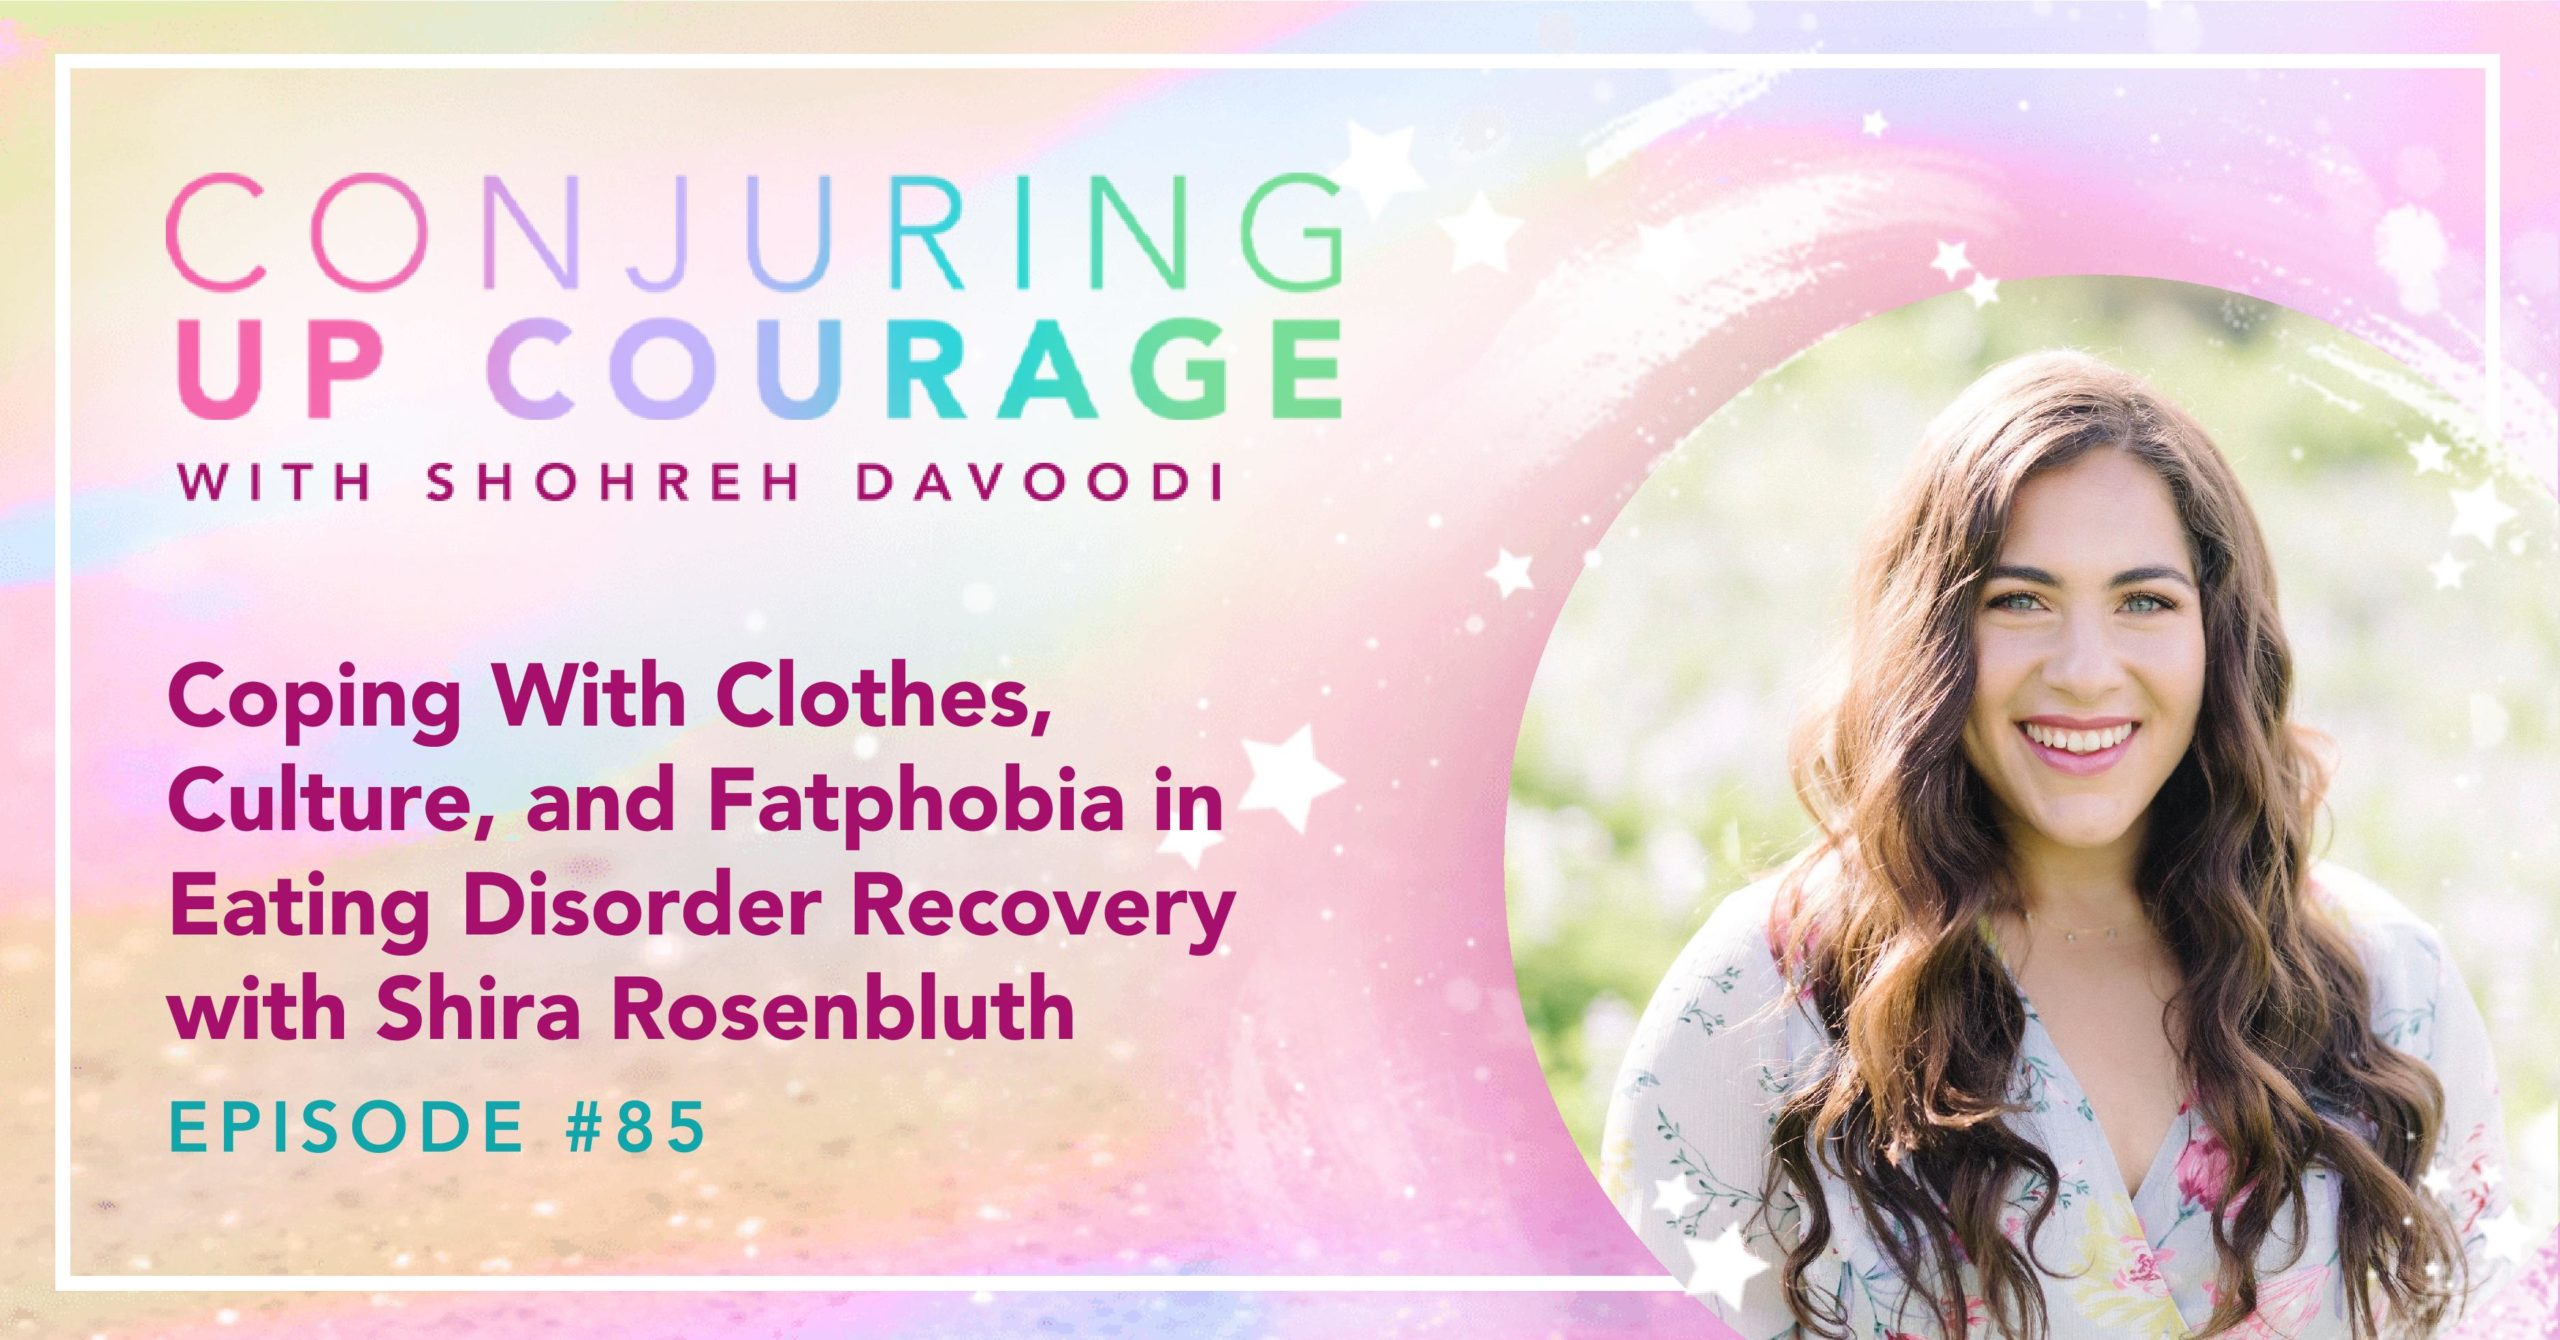 """Image text includes the Conjuring Up Courage logo, a photo of Shira, and the words """"Coping With Clothes, Culture, and Fatphobia in Eating Disorder Recovery with Shira Rosenbluth Episode #85"""""""